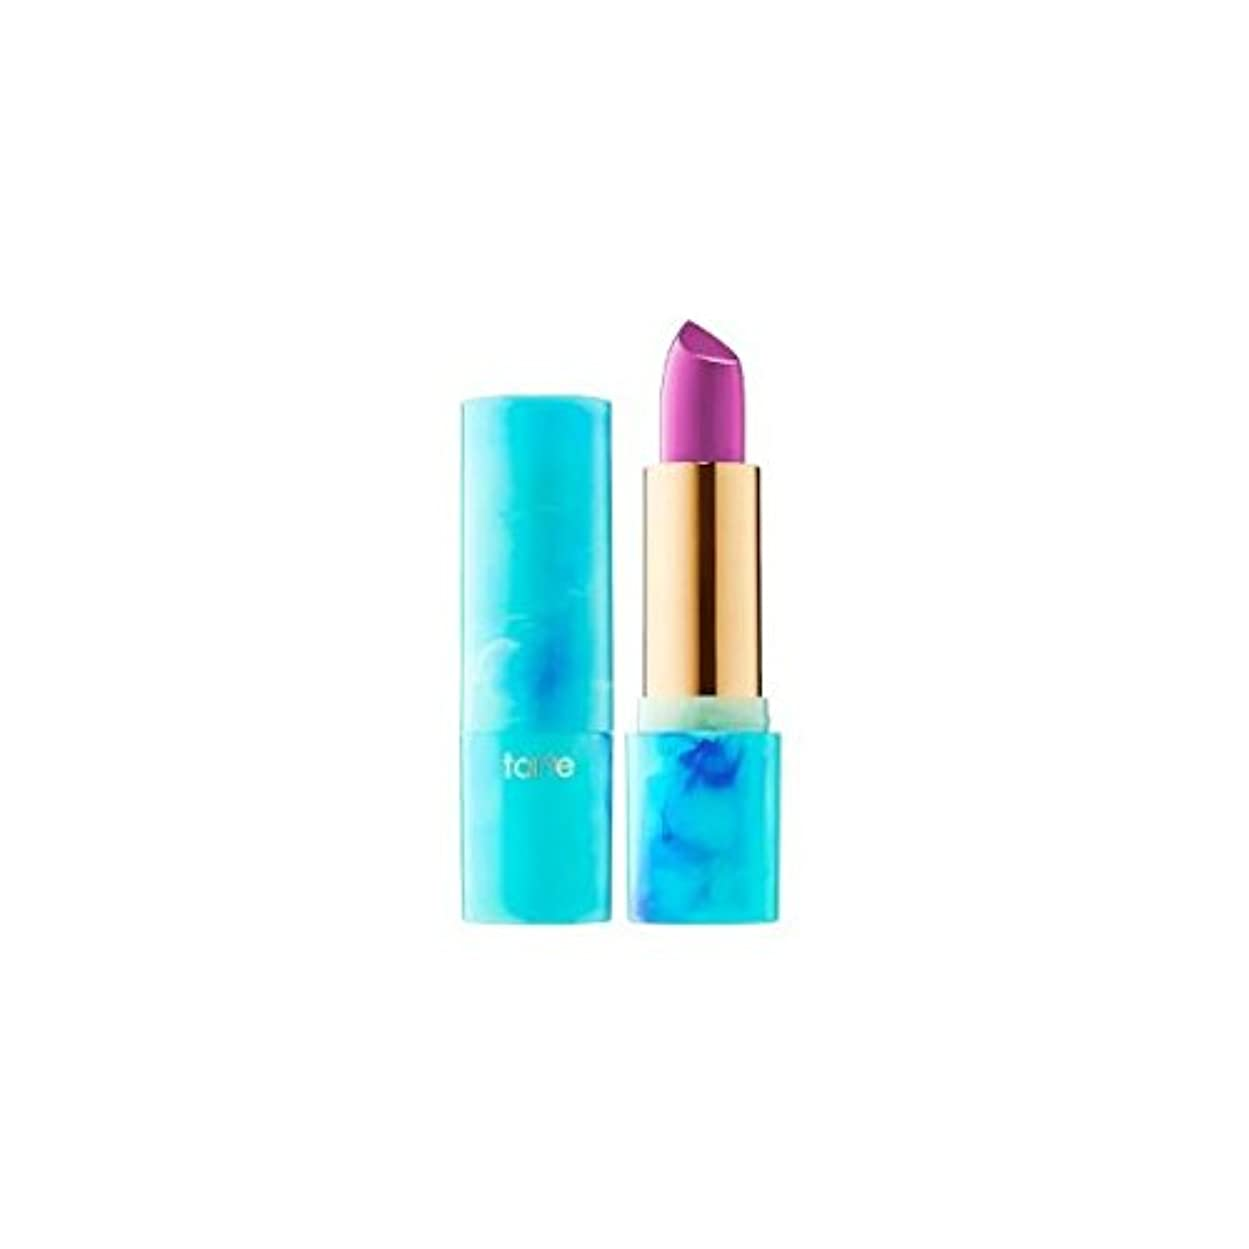 リムシアートラックtarteタルト リップ Color Splash Lipstick - Rainforest of the Sea Collection Satin finish